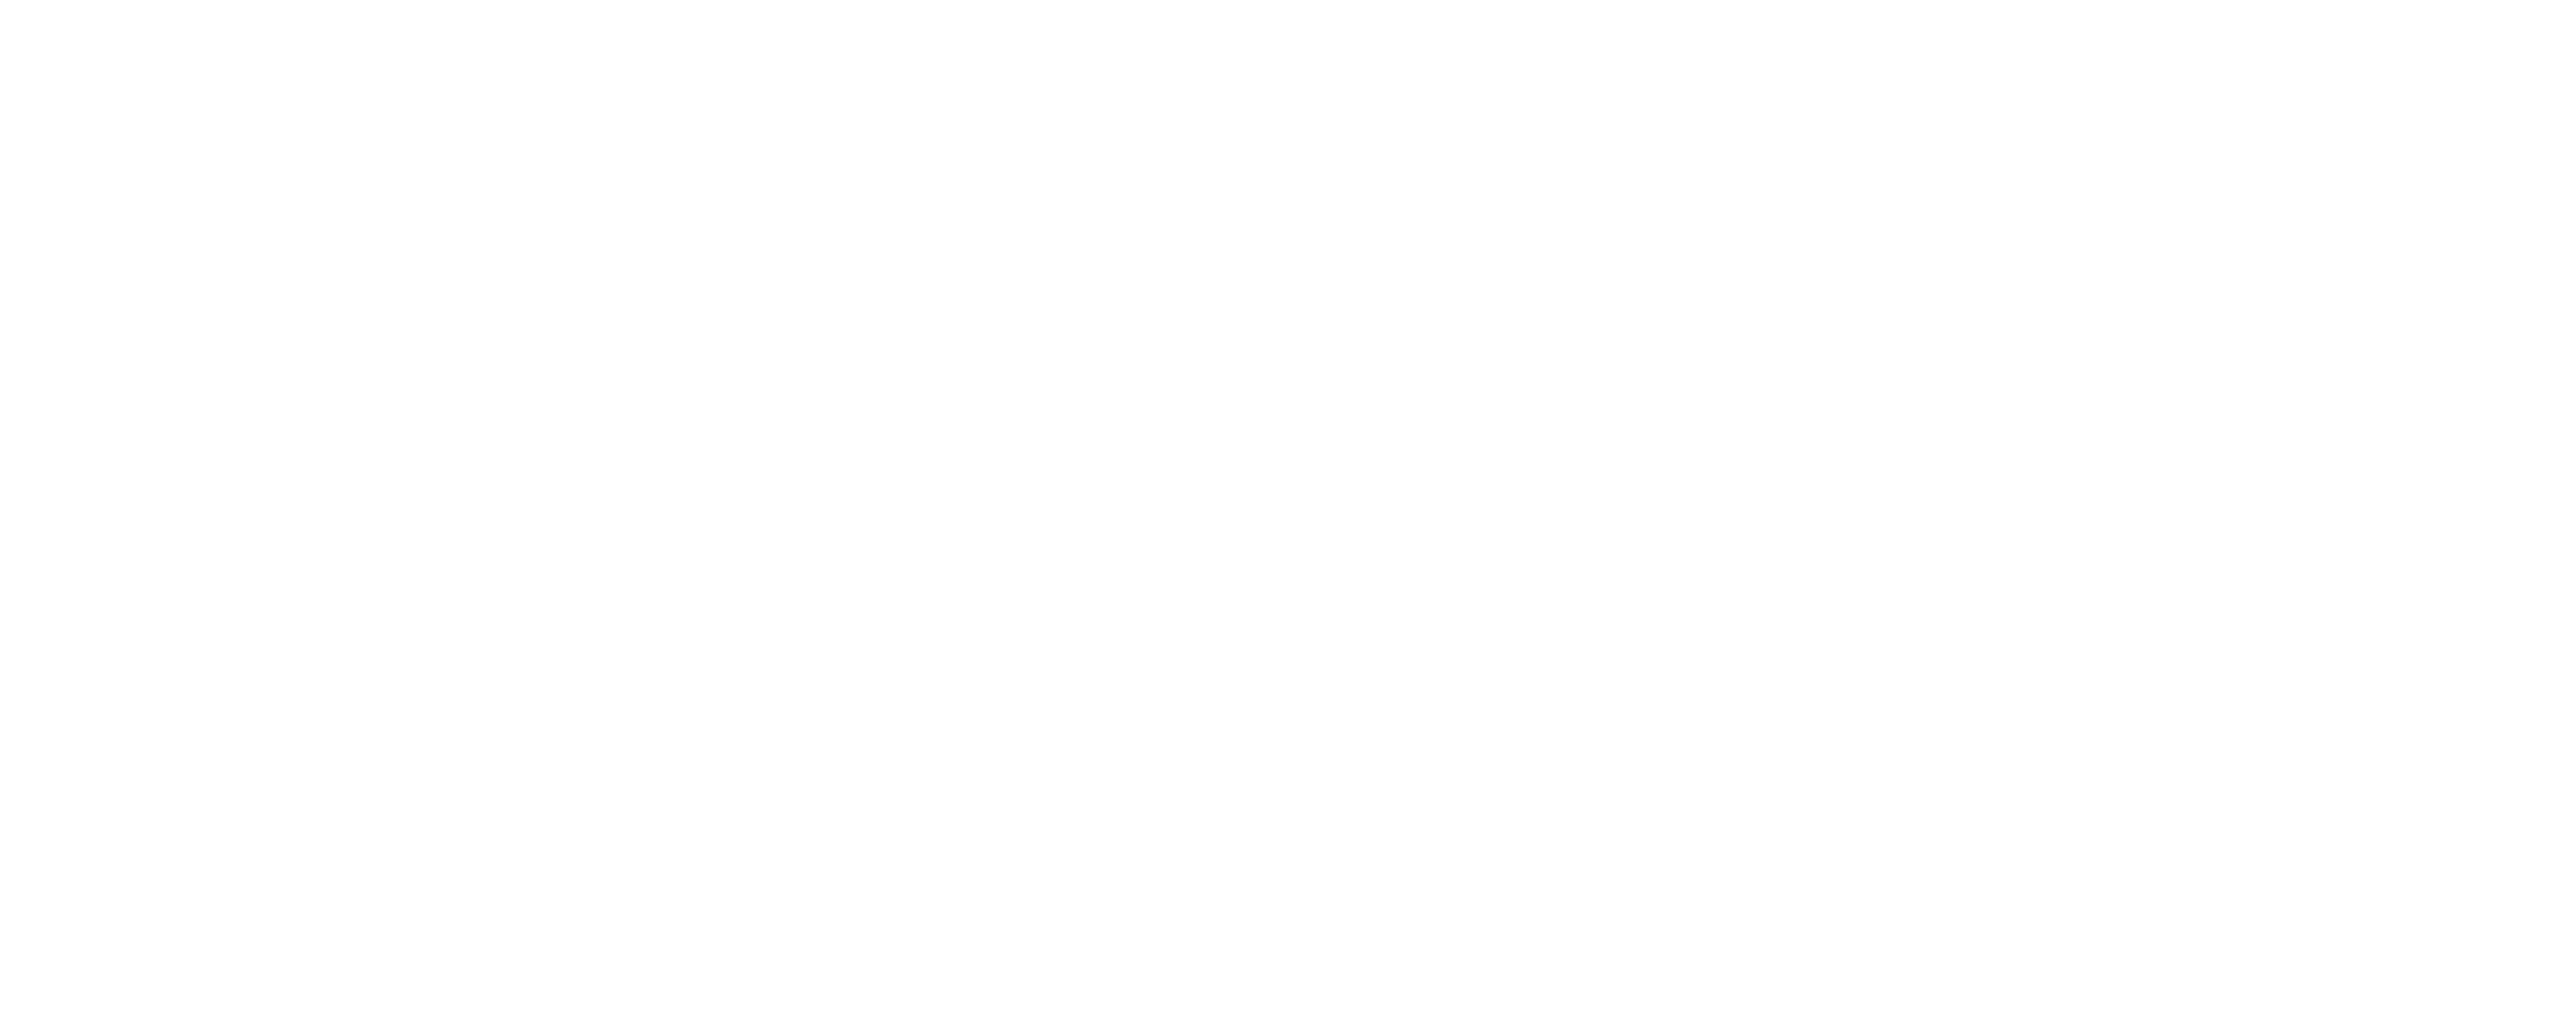 Business Builders Marketing Logo White